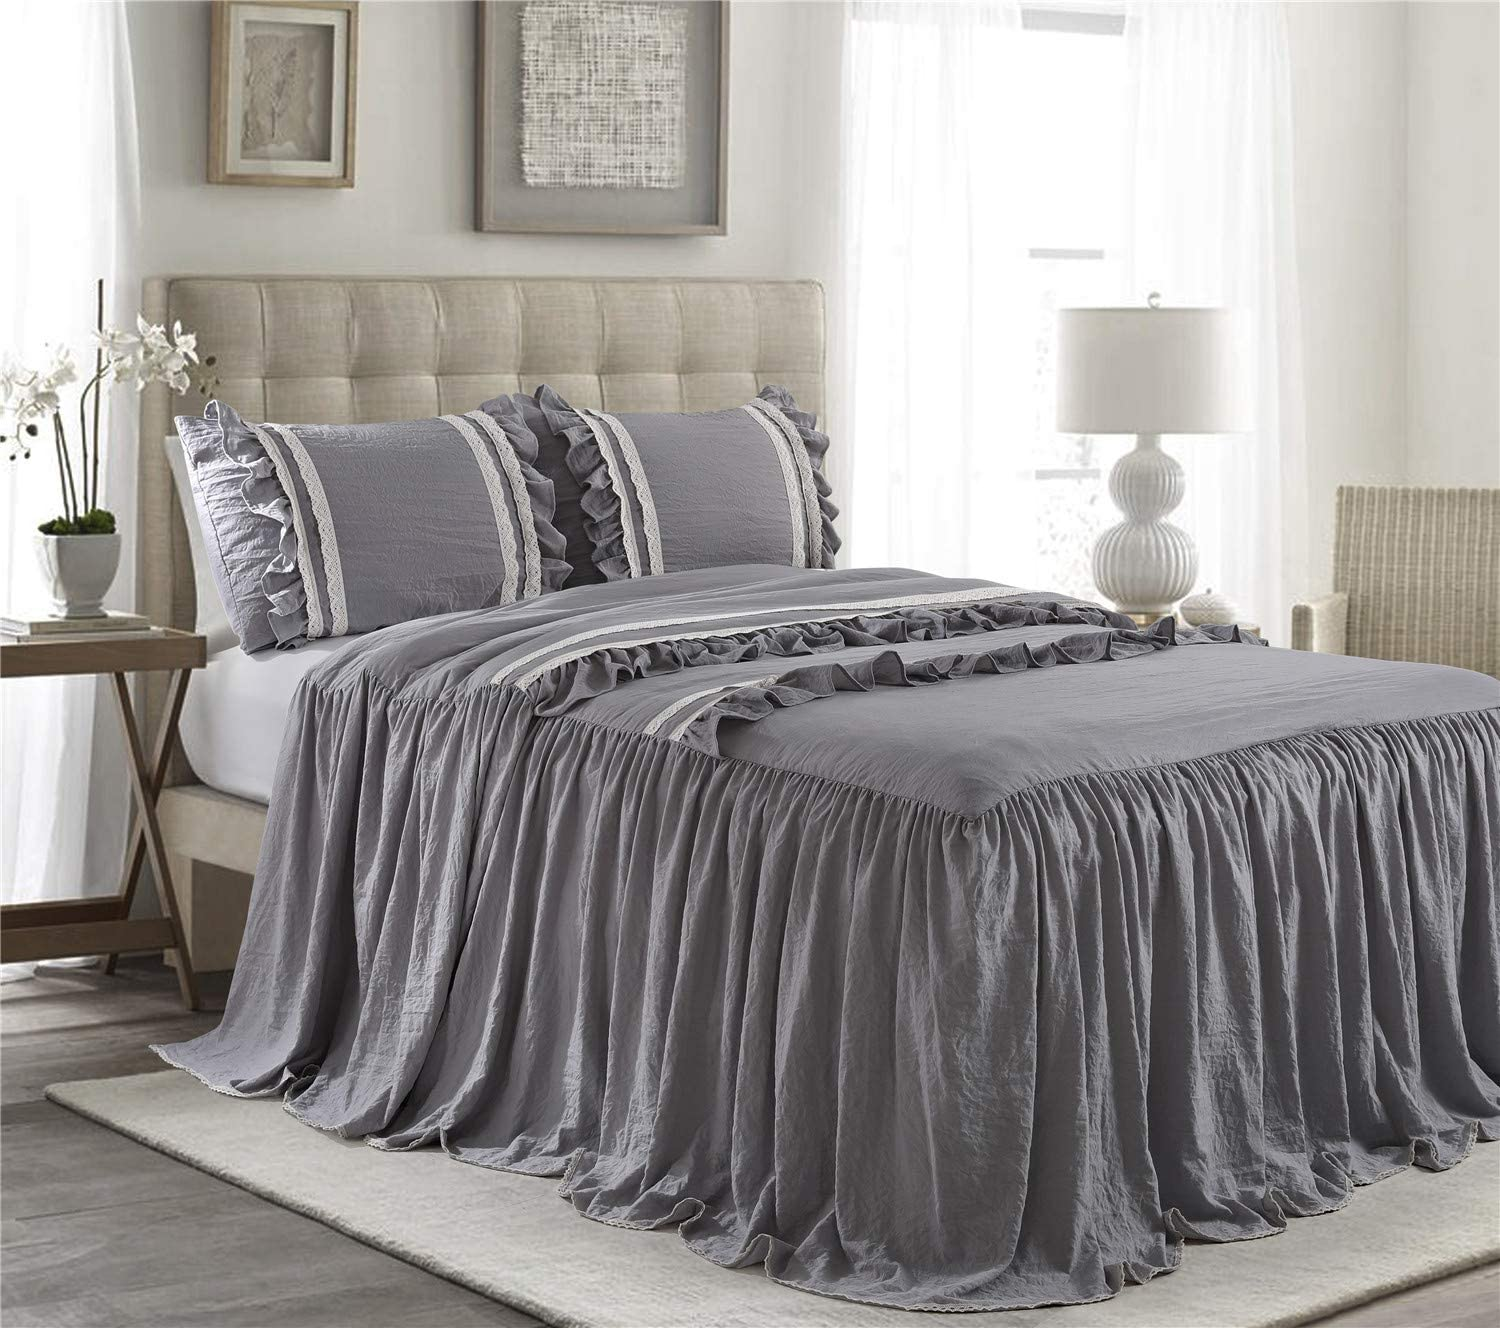 HIG 3 Piece Ruffle Skirt Bedspread Set King-Gray Color 30 inches Drop Ruffled Style Bed Skirt Coverlets Bedspreads Dust Ruffles- Emma Bedding Collections King Size-1 Bedspread, 2 Standard Shams